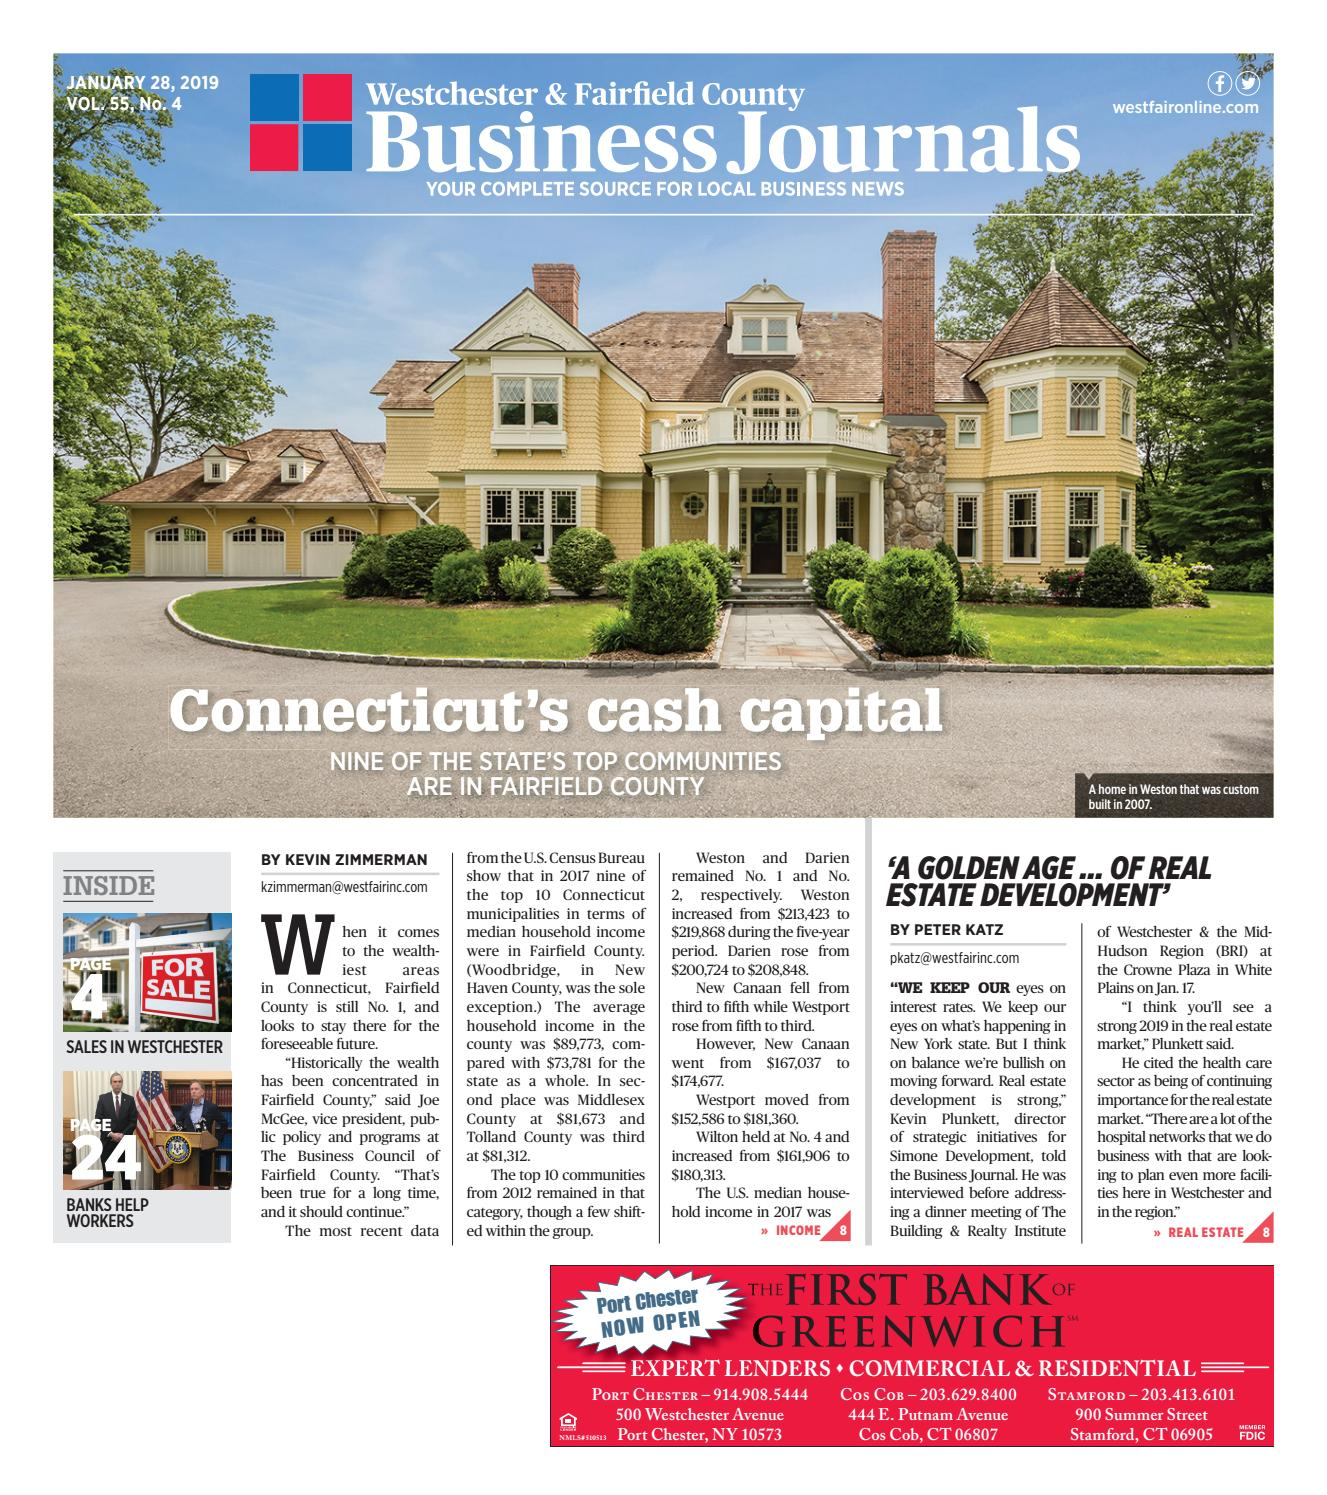 westchester fairfield county business journals wag page ethan allen ballan accent table magazine issuu round metal patio glass top tiffany glassware prefinished hardwood flooring